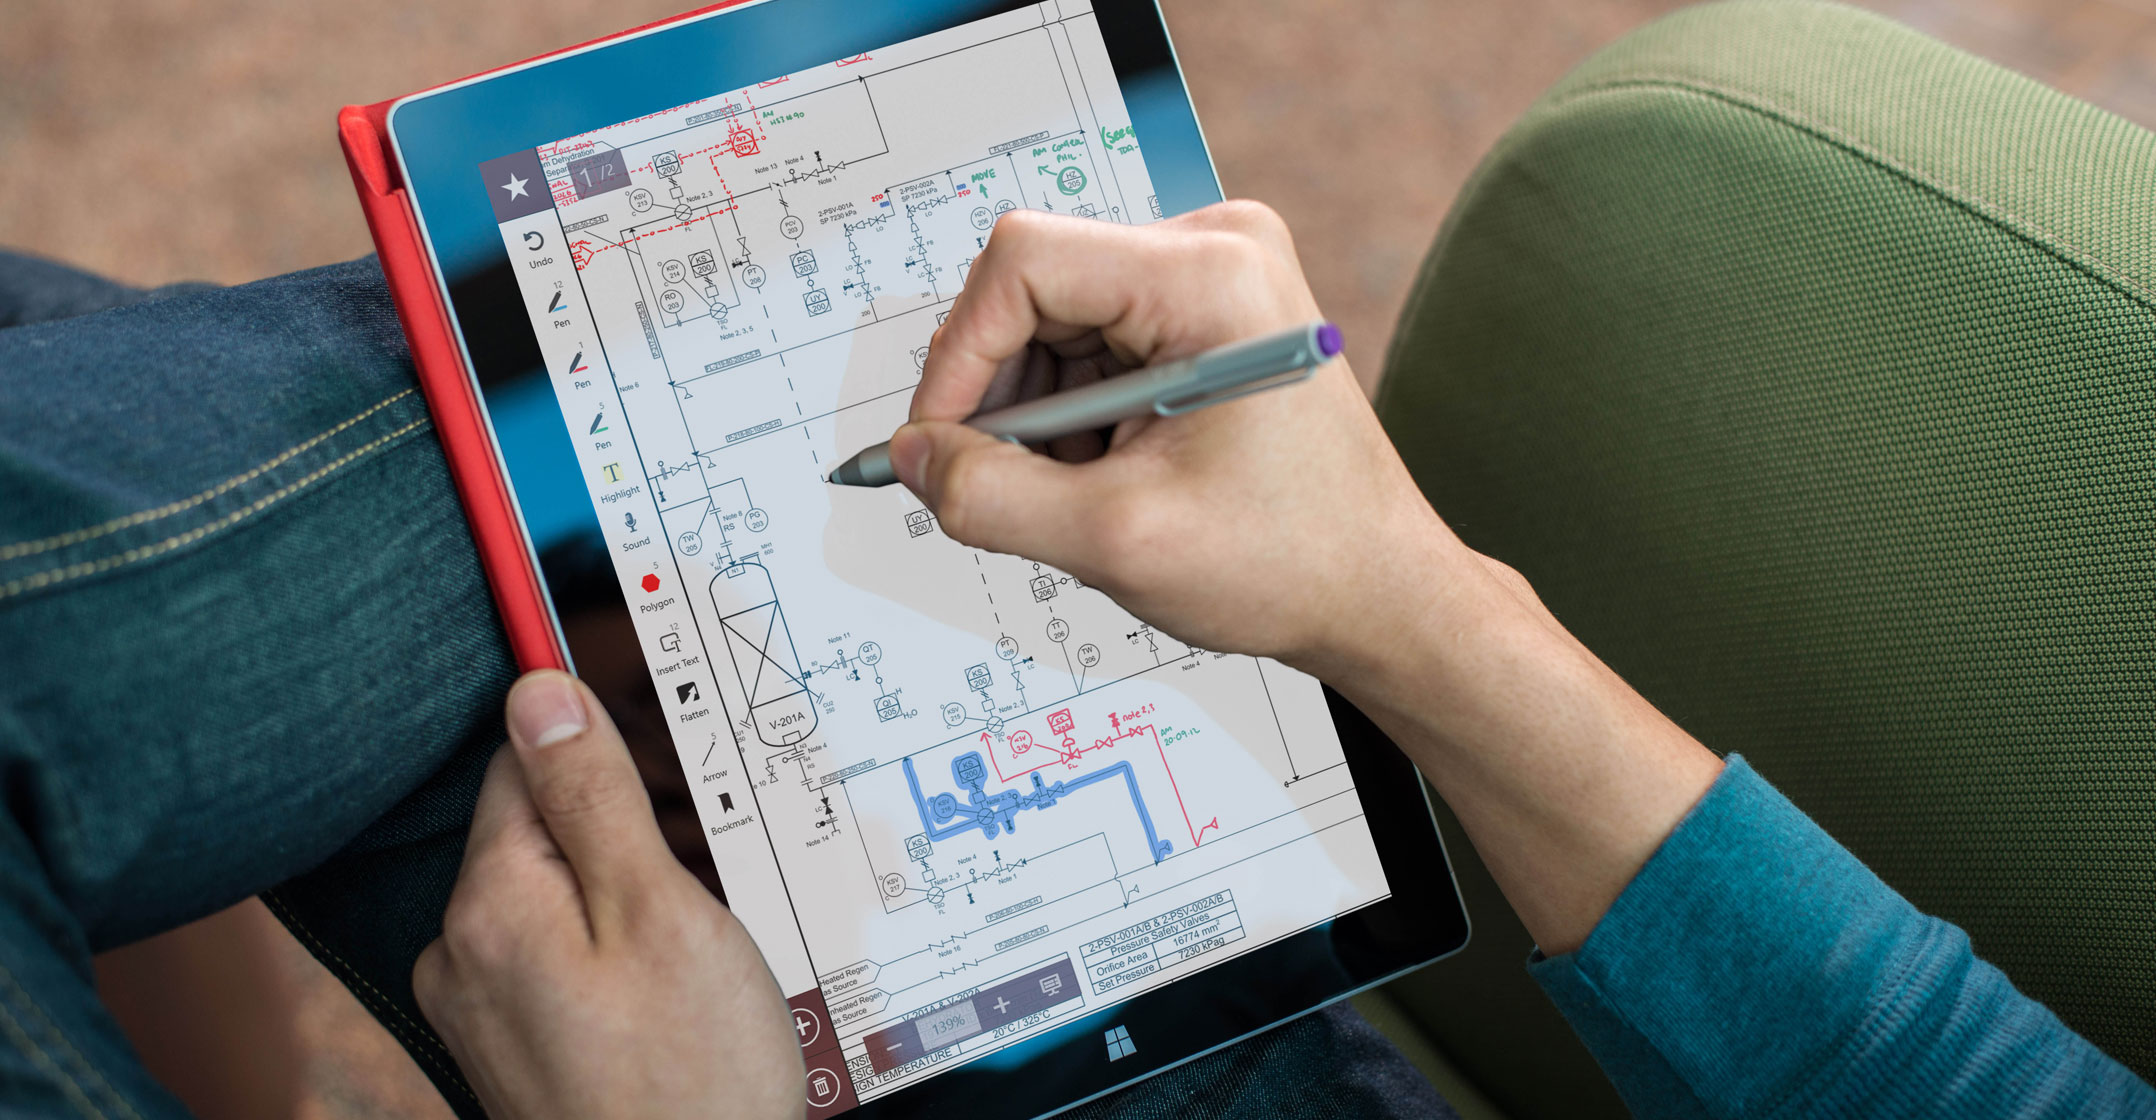 Microsoft plans to take on iPad with low-priced  Surface tablets